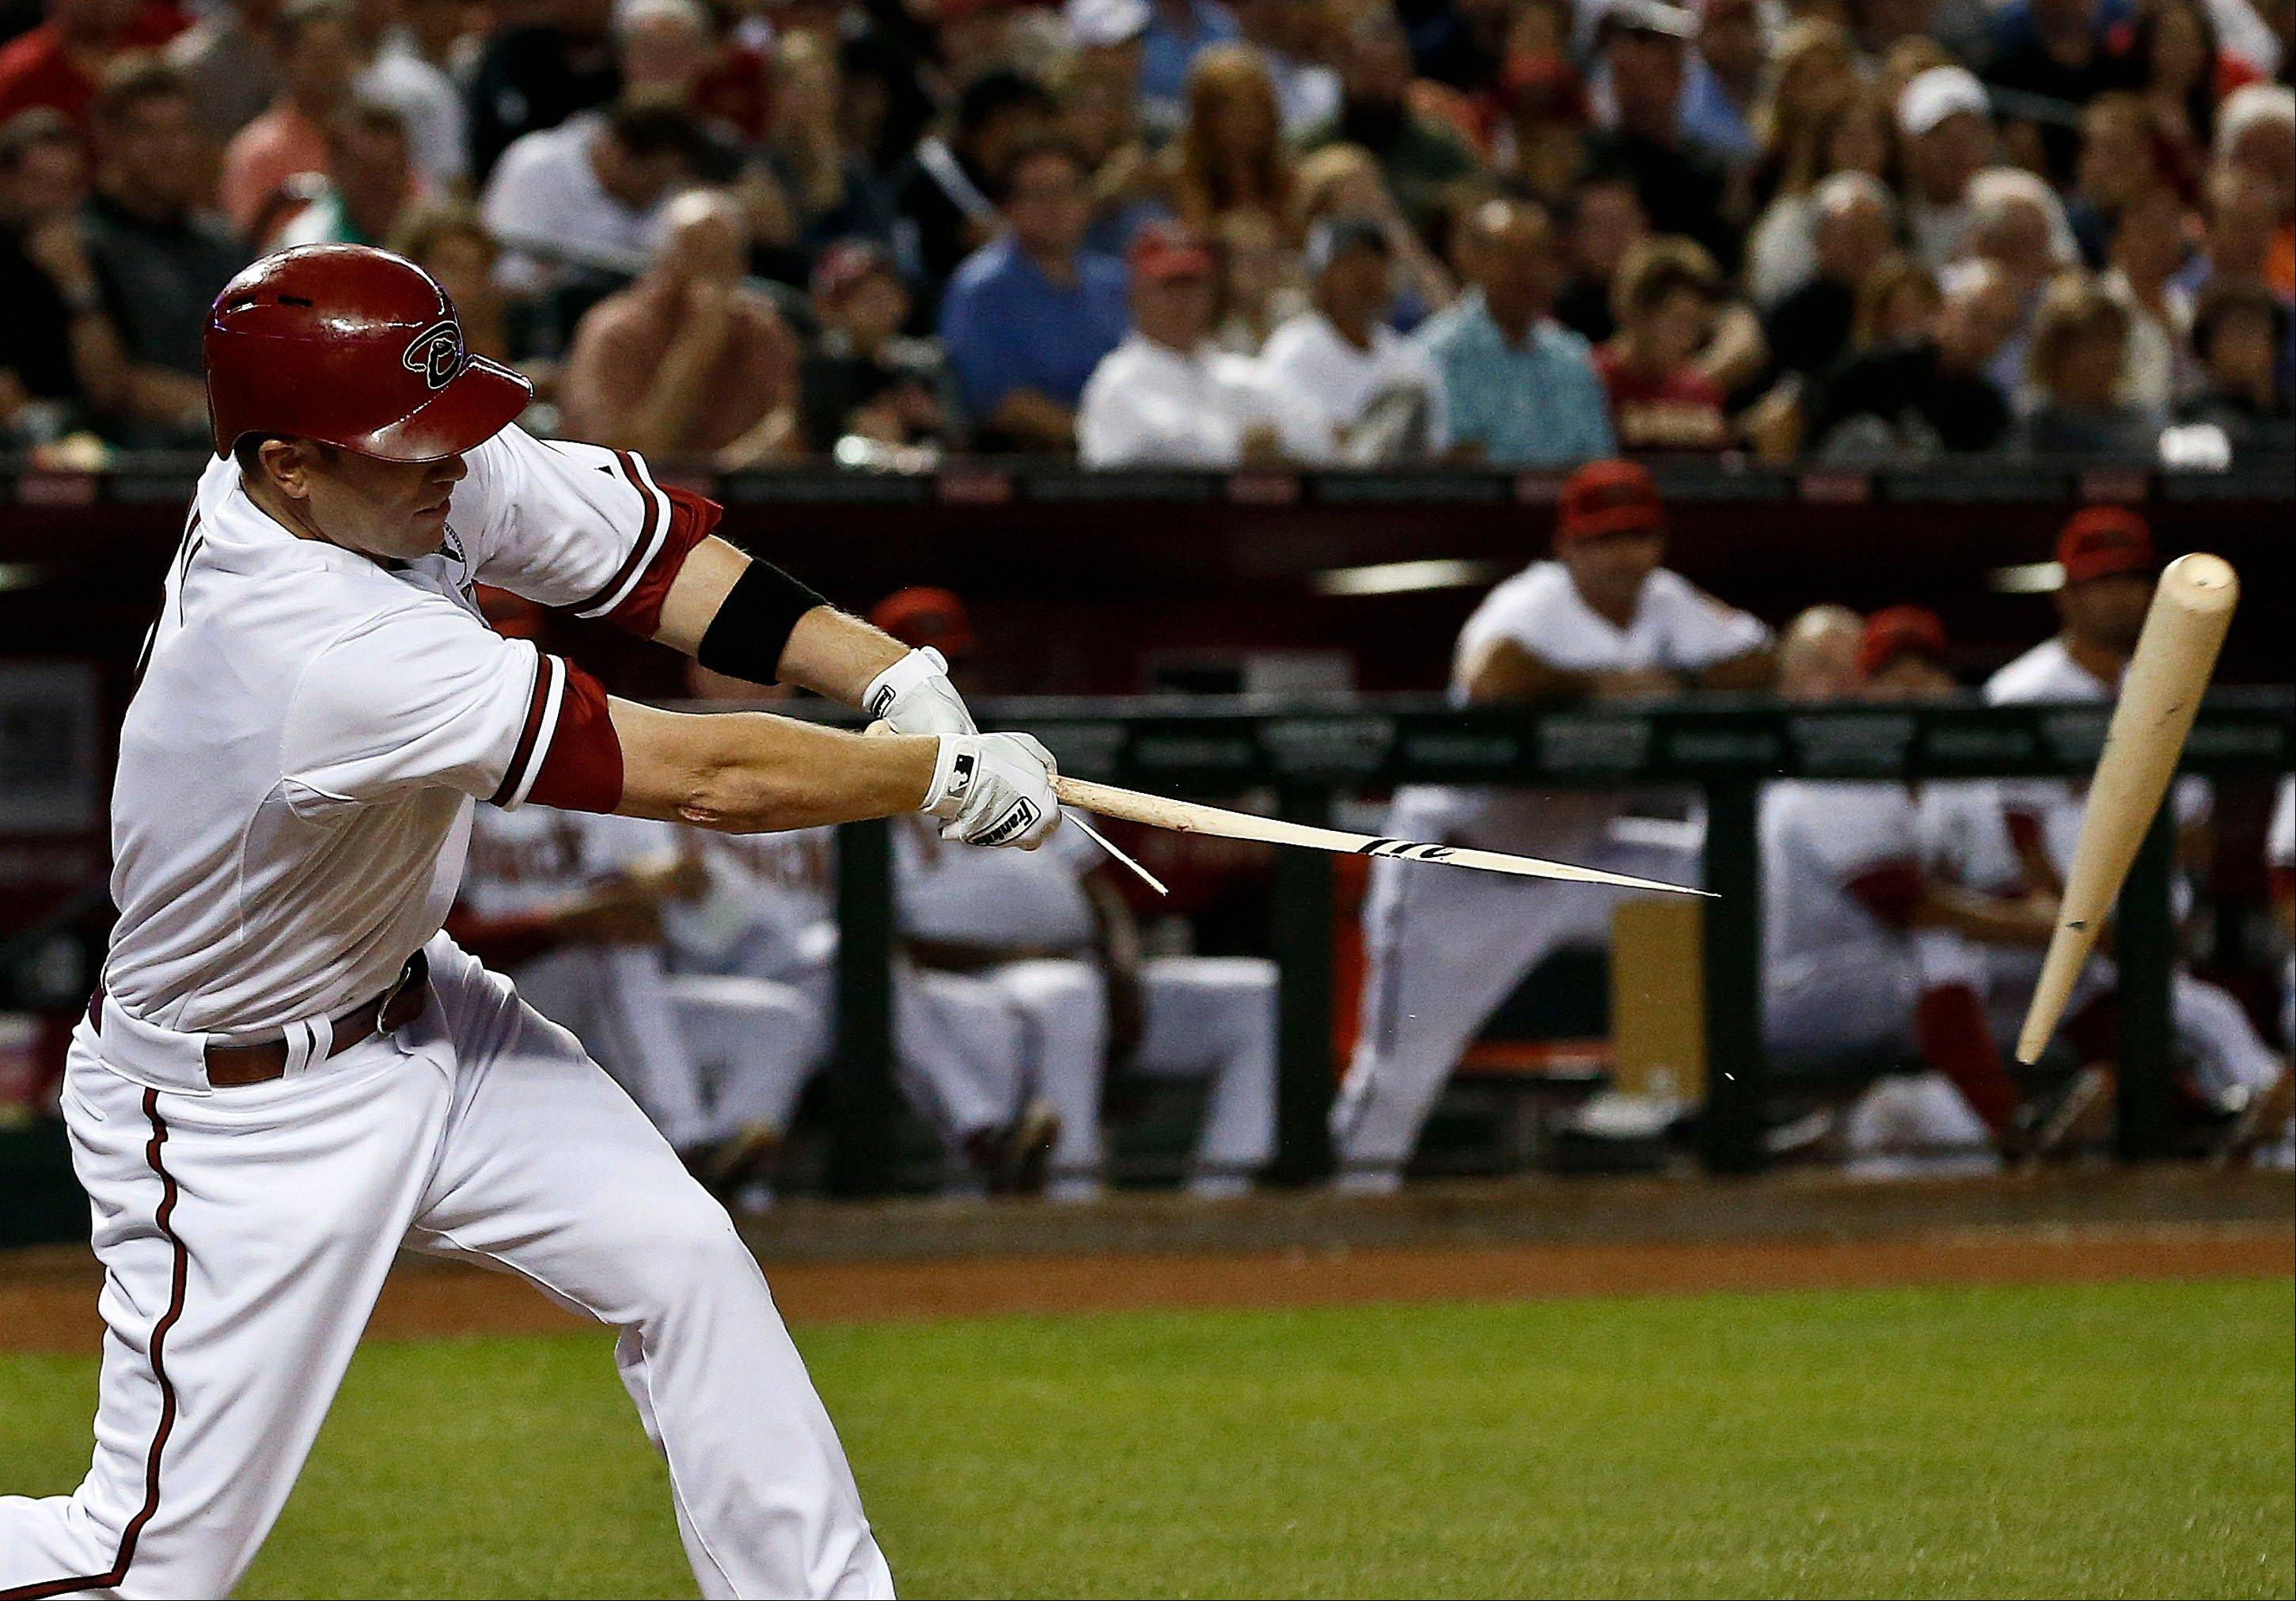 The Diamondbacks' Aaron Hill breaks his bat but connects for an RBI hit against the St. Louis Cardinals in the fifth inning Monday on Opening Day in Phoenix.